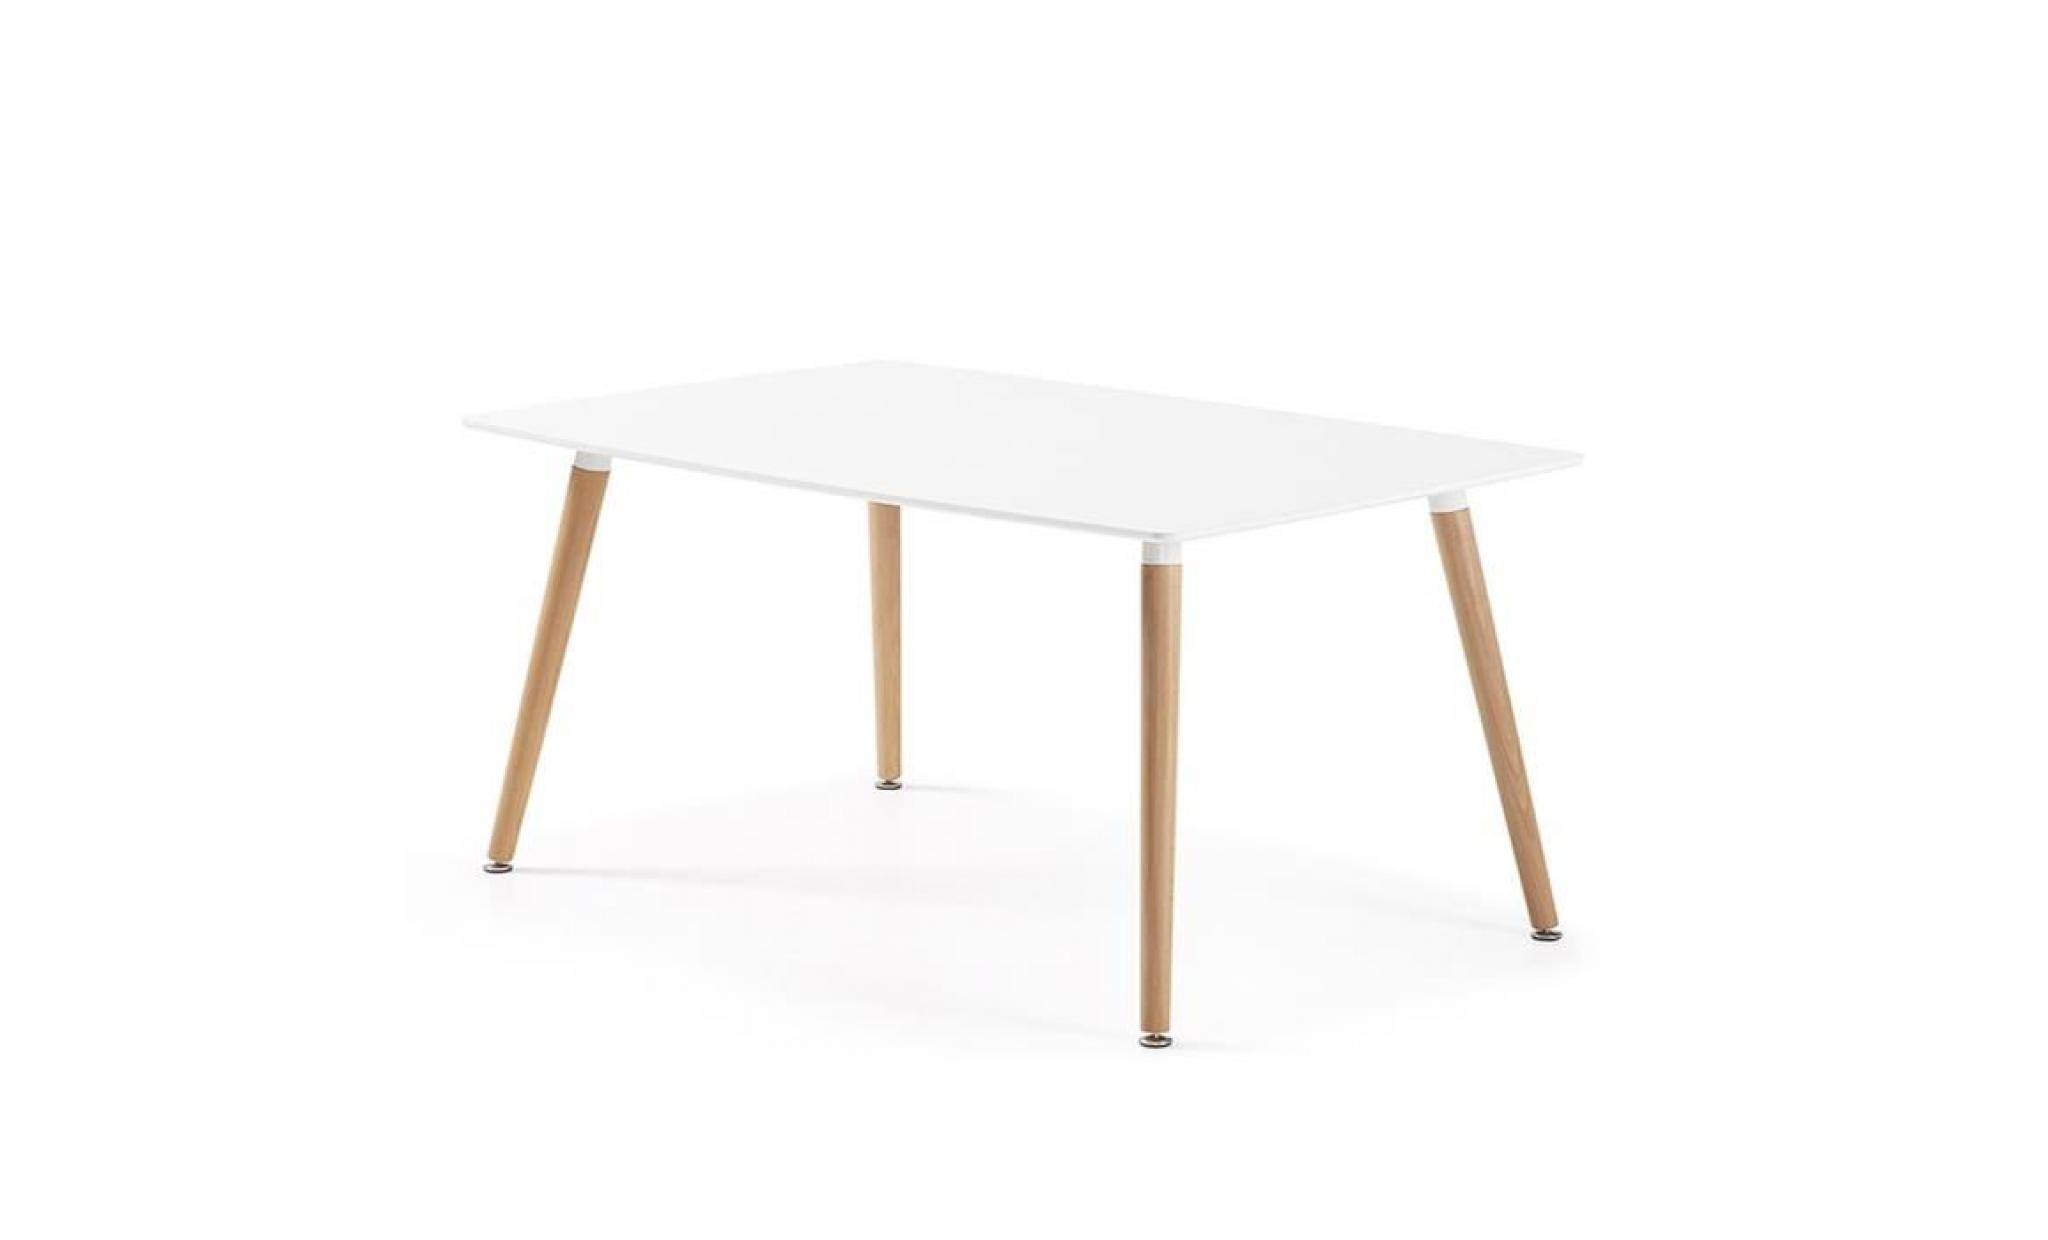 Table manger rectangulaire design blanche en bois laqu for Table salle a manger rectangulaire